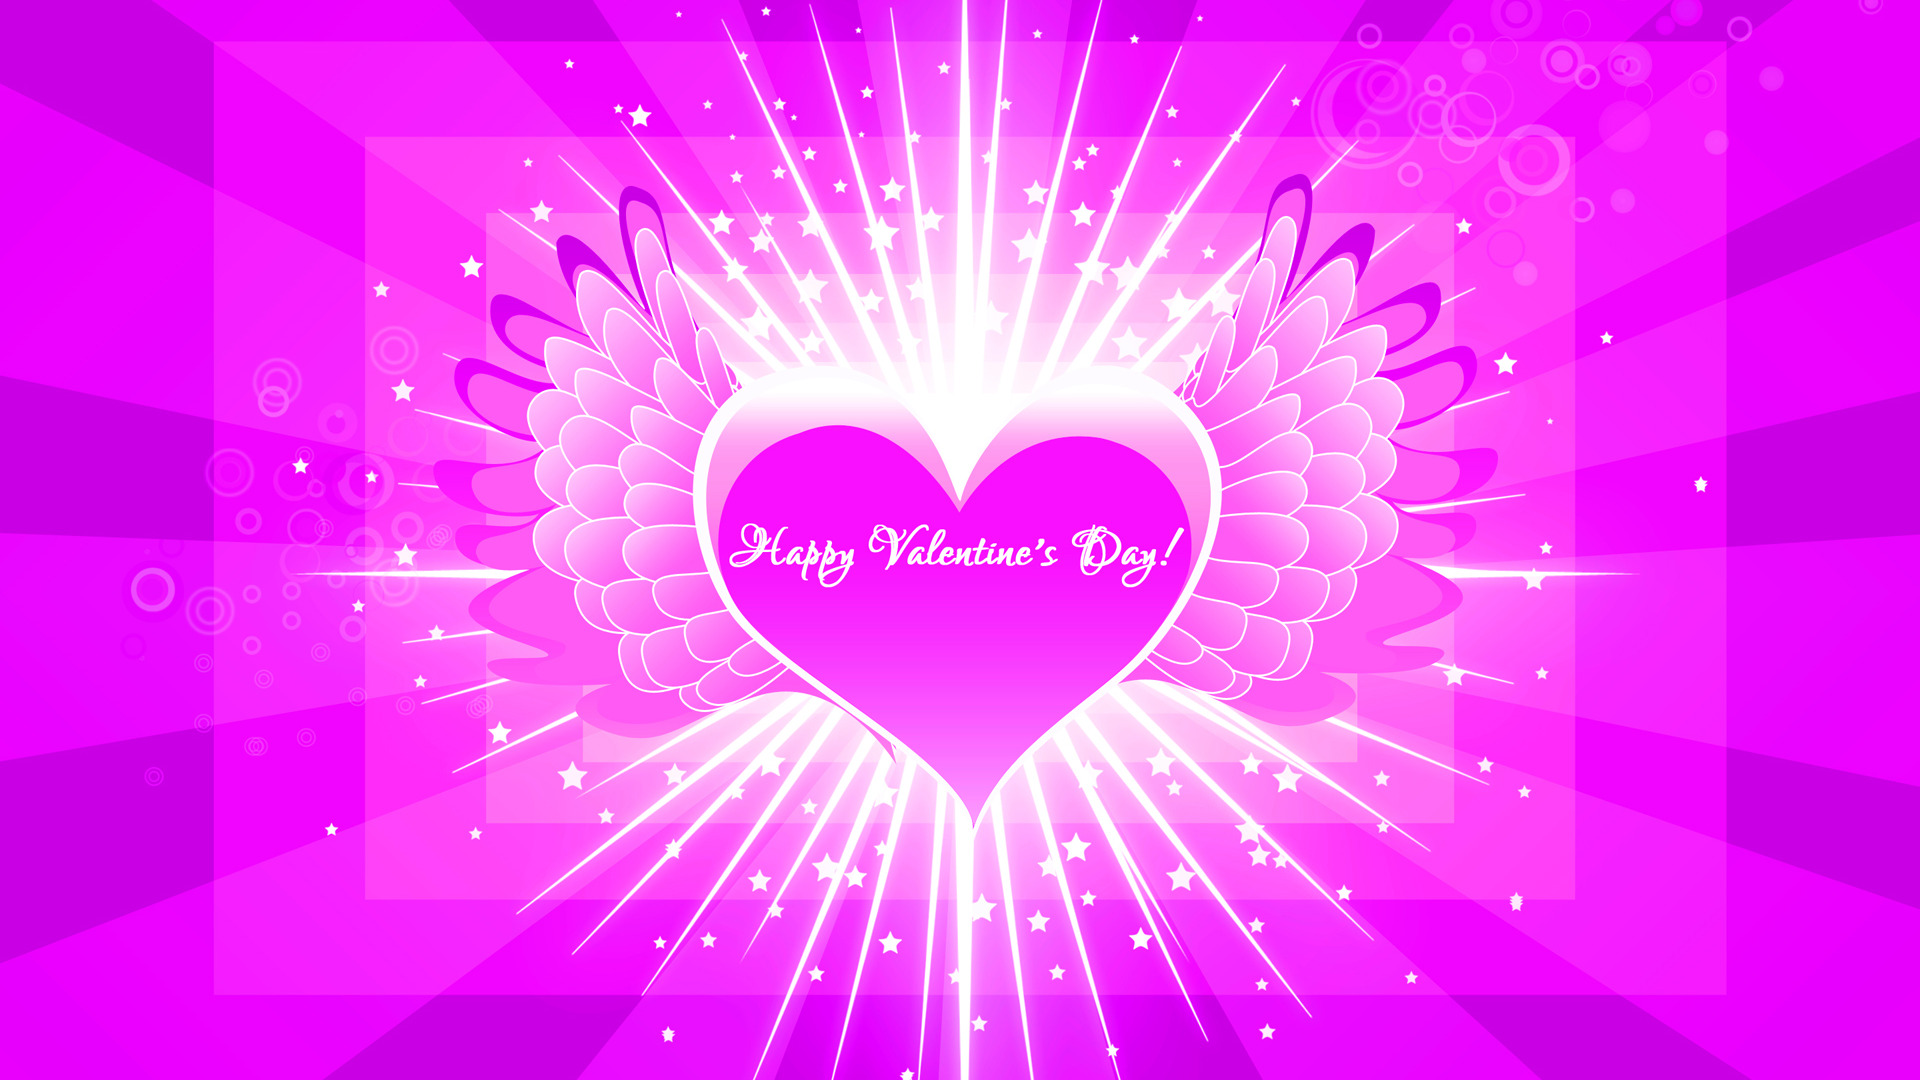 Happy Valentine's Day HD Wallpaper Images